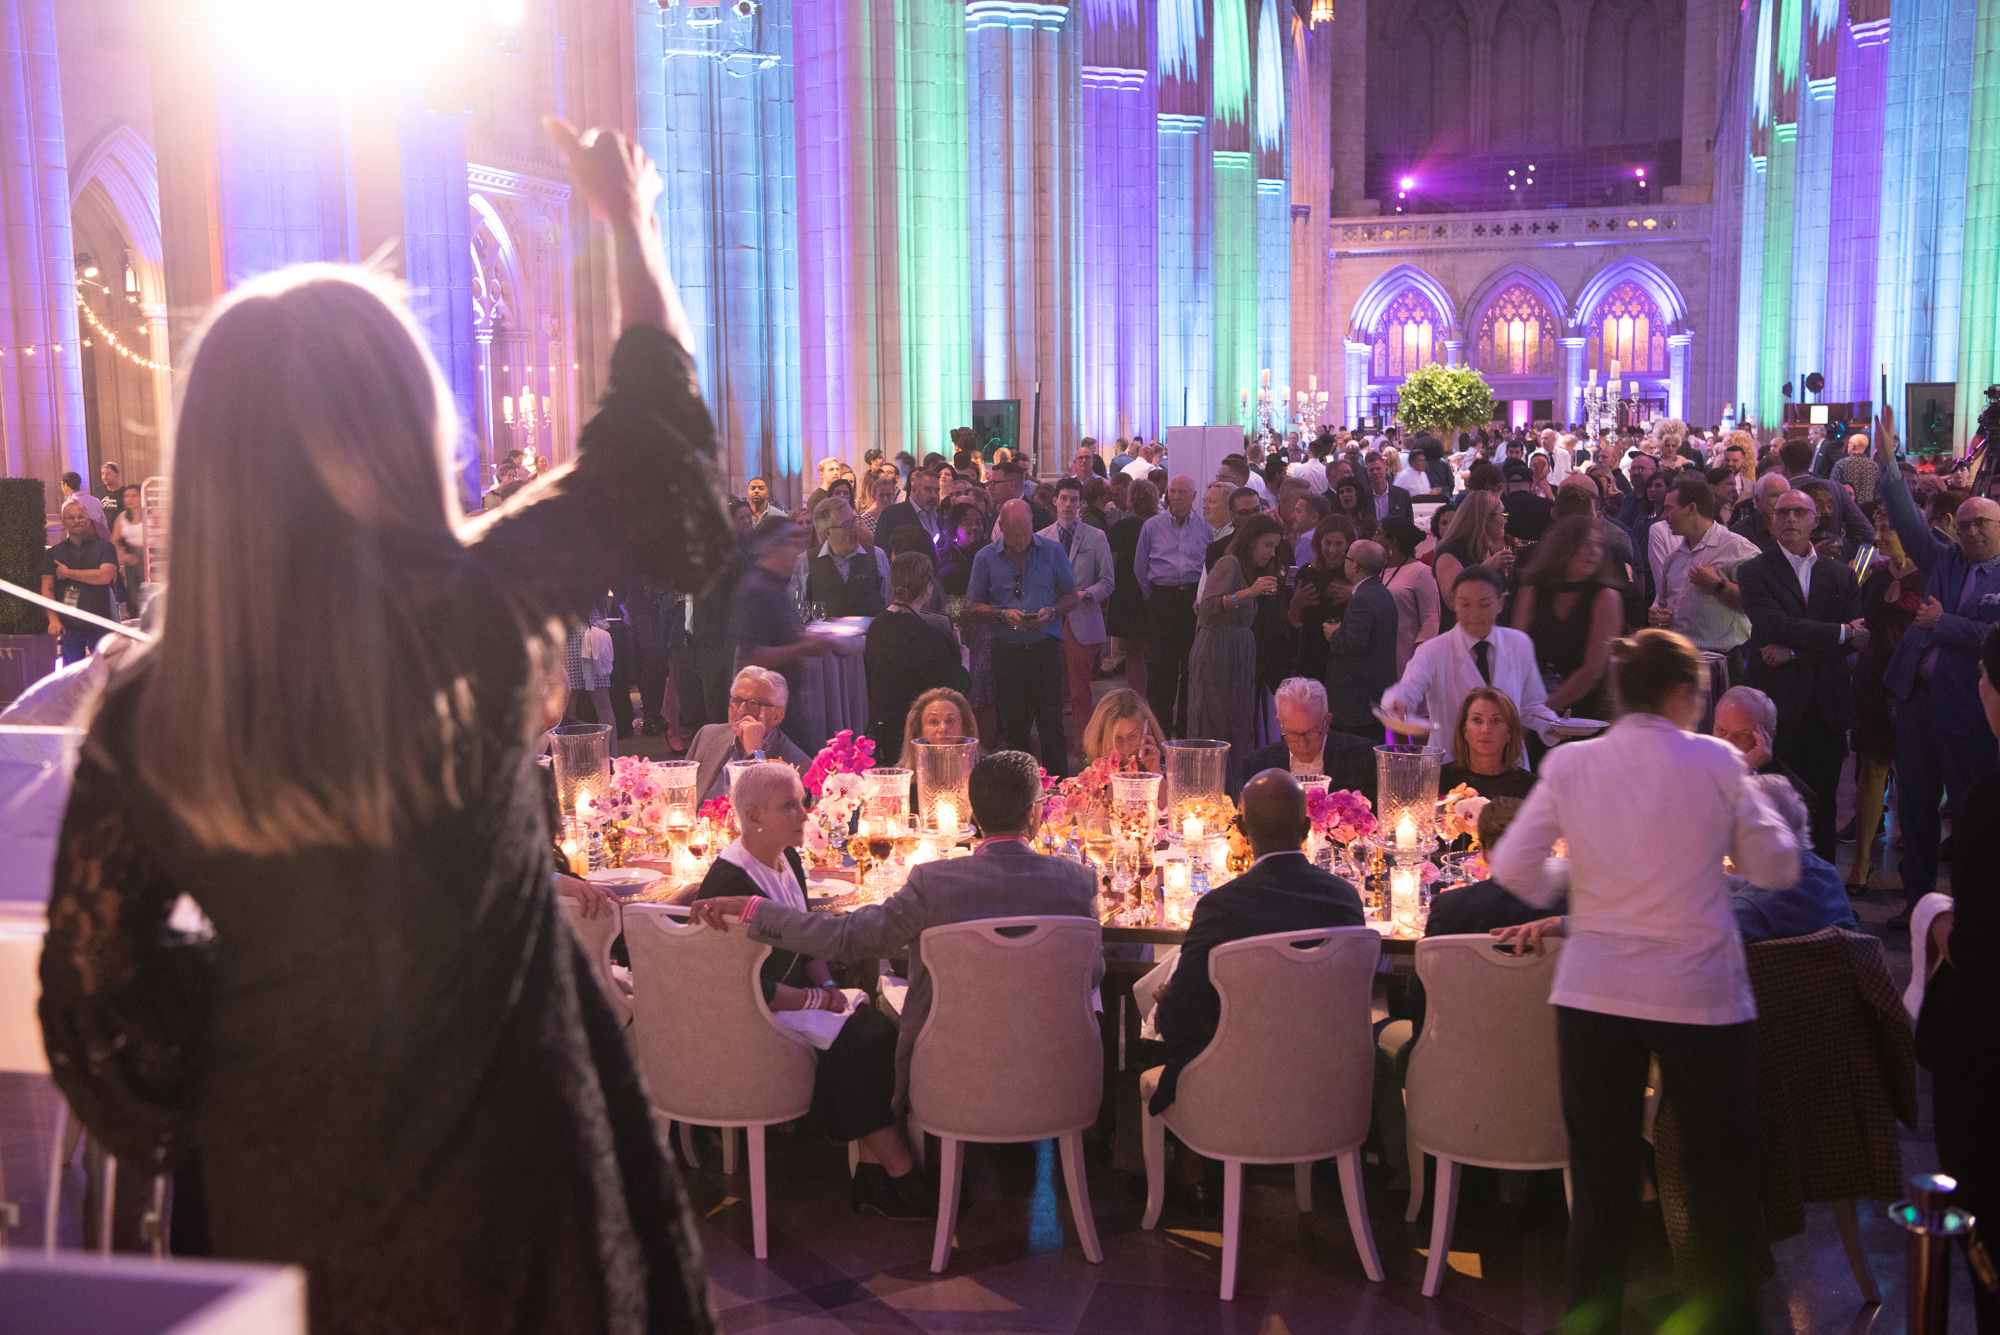 Anyone who attended the Human Rights Campaign's 7th annual Chefs for Equality gala on October 9 and left hungry did something wrong! The Washington National Cathedral was awash in rainbow as it played host to hundreds of Washingtonians eager to show their support for the HRC Foundation and their mission of fighting for full LGBTQ equality. And show their support they did, as the event raised{&amp;nbsp;} more than$300,000 for the foundation, through ticket sales, a silent auction and a live auction. More than 120 of the DMV's top chefs and mixologists were on hand to do the &quot;deliciously defiant&quot; theme proud, serving up small bites (like foie gras macaroons and dan dan noodles in mini carryout containers) and cocktails to guests. The luckiest guests dined at private tables,{&amp;nbsp;}where celebrity chefs created lavish five-course paired meals. Back by popular demand, the &quot;5/10/15 Speed Diner&quot; ticket option allowed guests to purchase a seat at the intimate diner-style counters where they were treated to a specialty cocktail and a mini five-course tasting menu prepared by five pairs of renowned chefs. If you missed the fun, scroll through our photo gallery to get an insider's look! (Image:{&amp;nbsp;}Jeff Martin for Human Rights Campaign)<br>